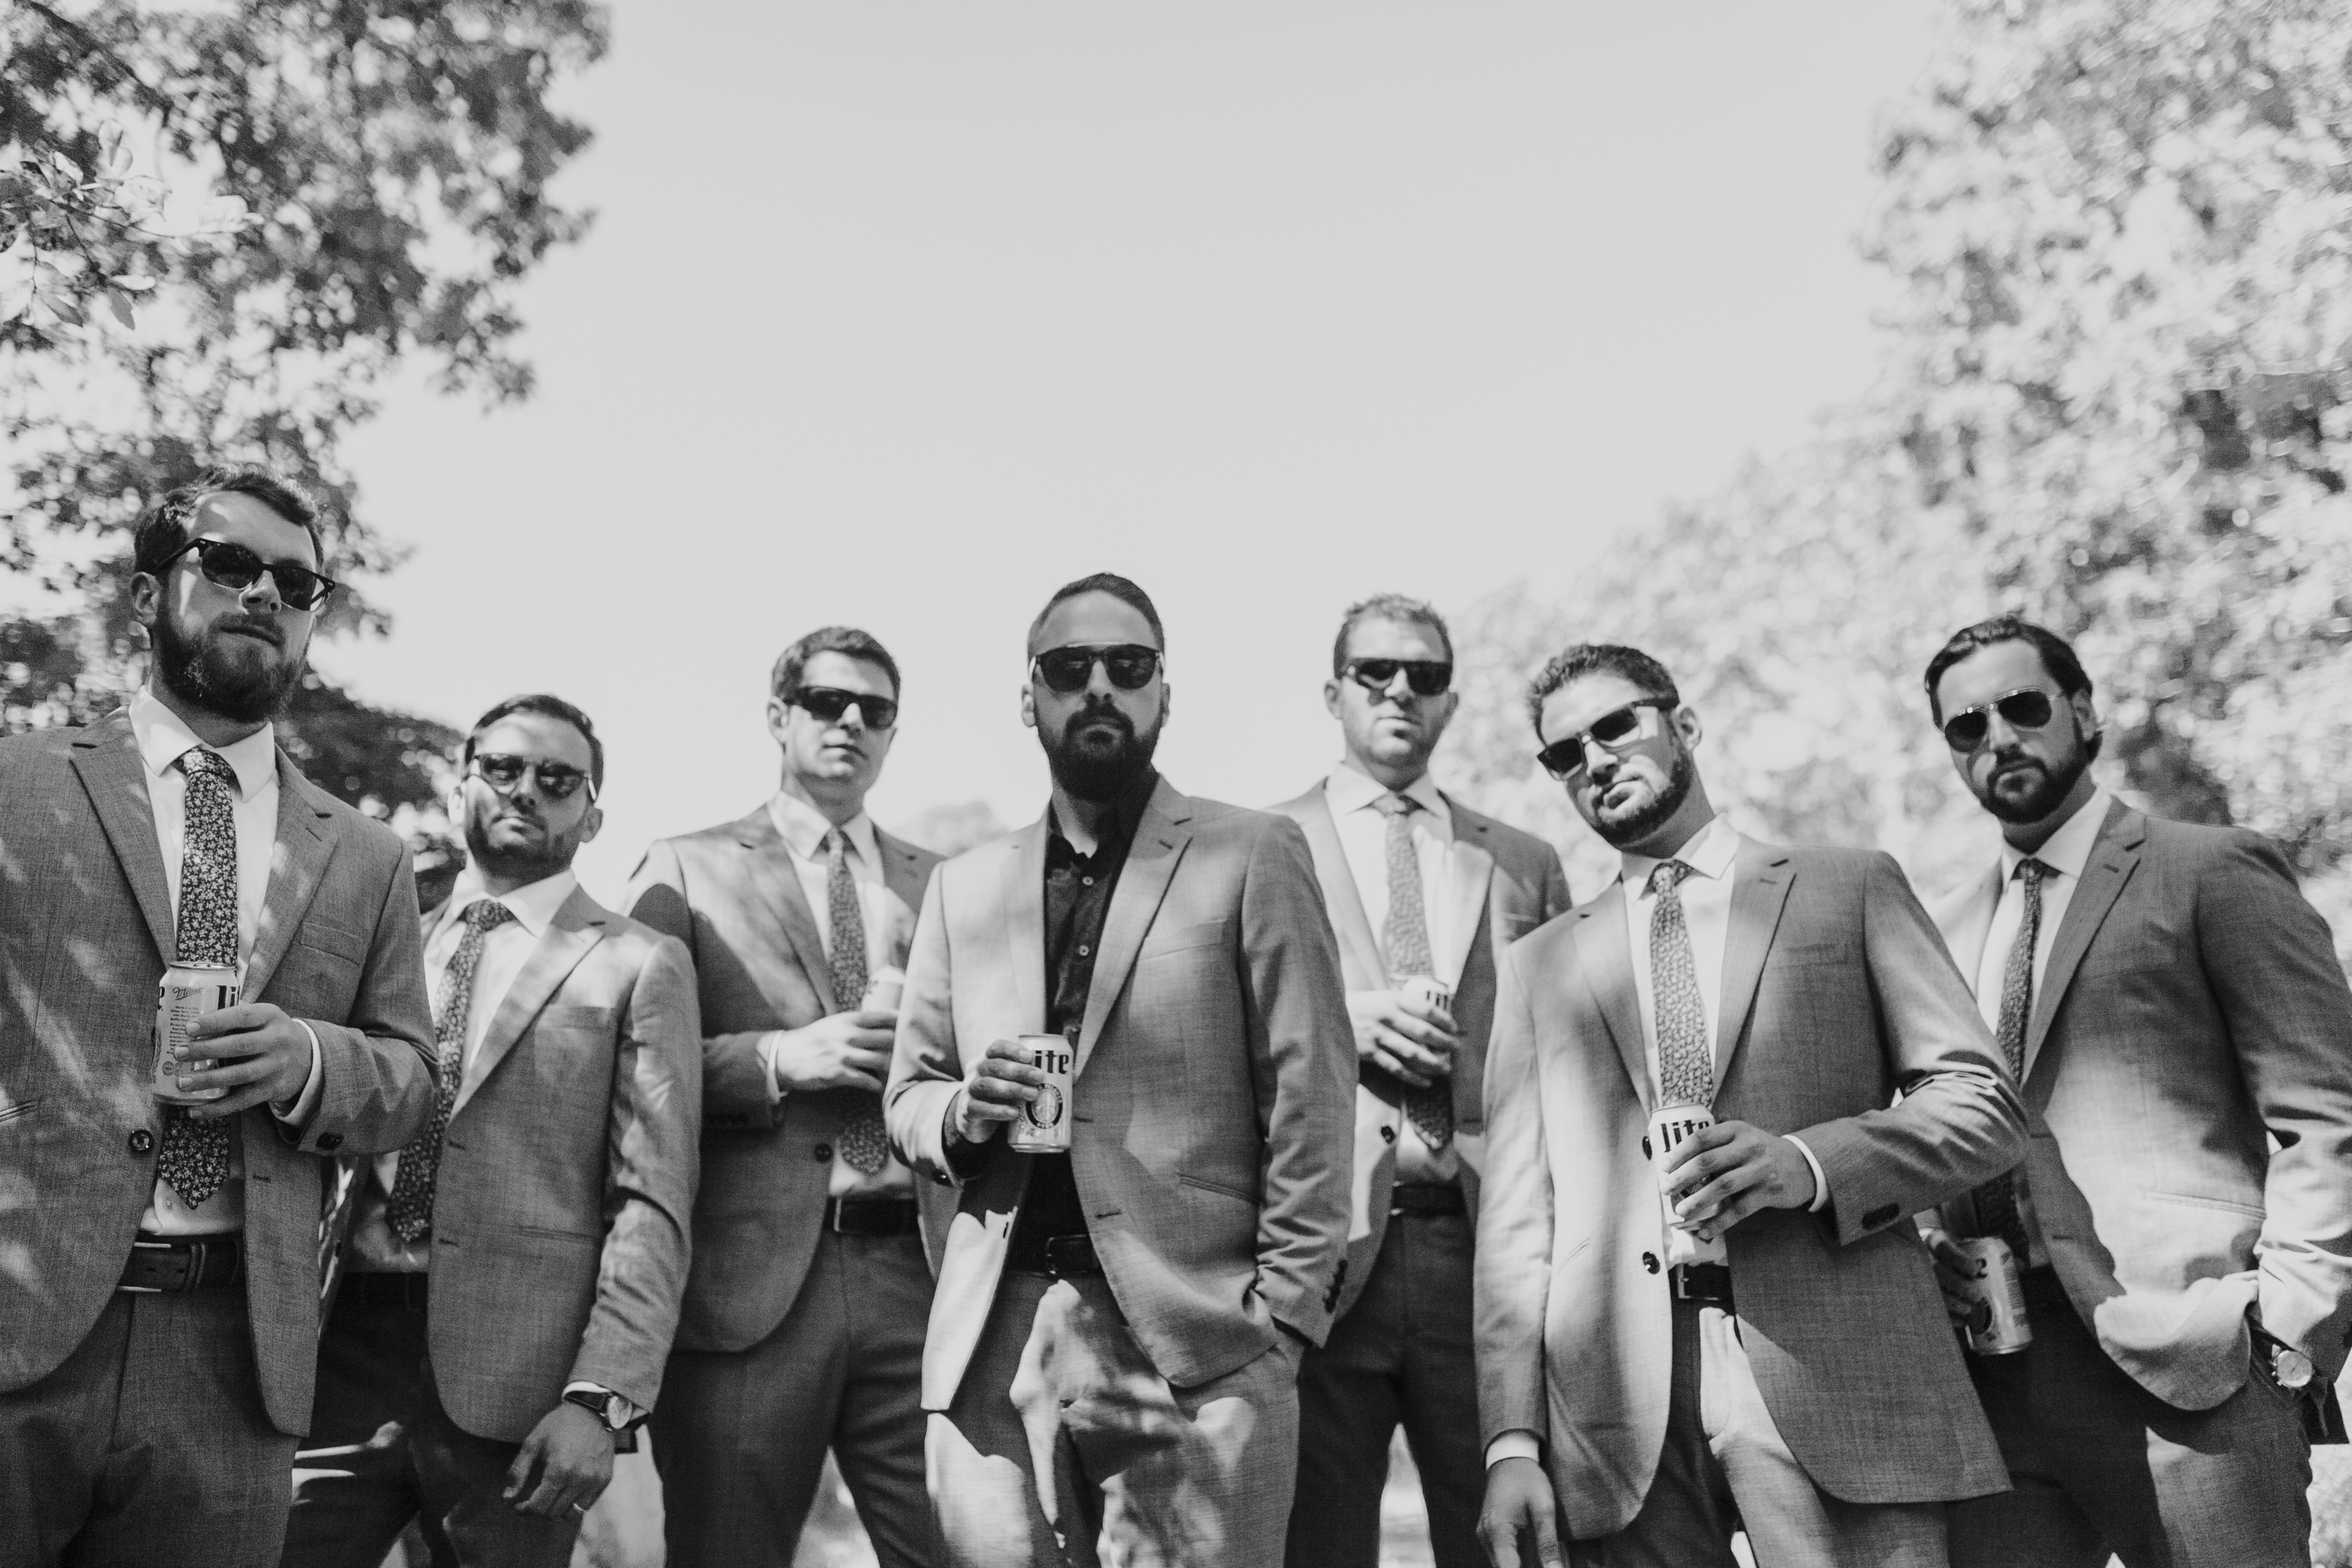 gq, beers bros and sunglasses, black and white picture of groom groomsmen and beer